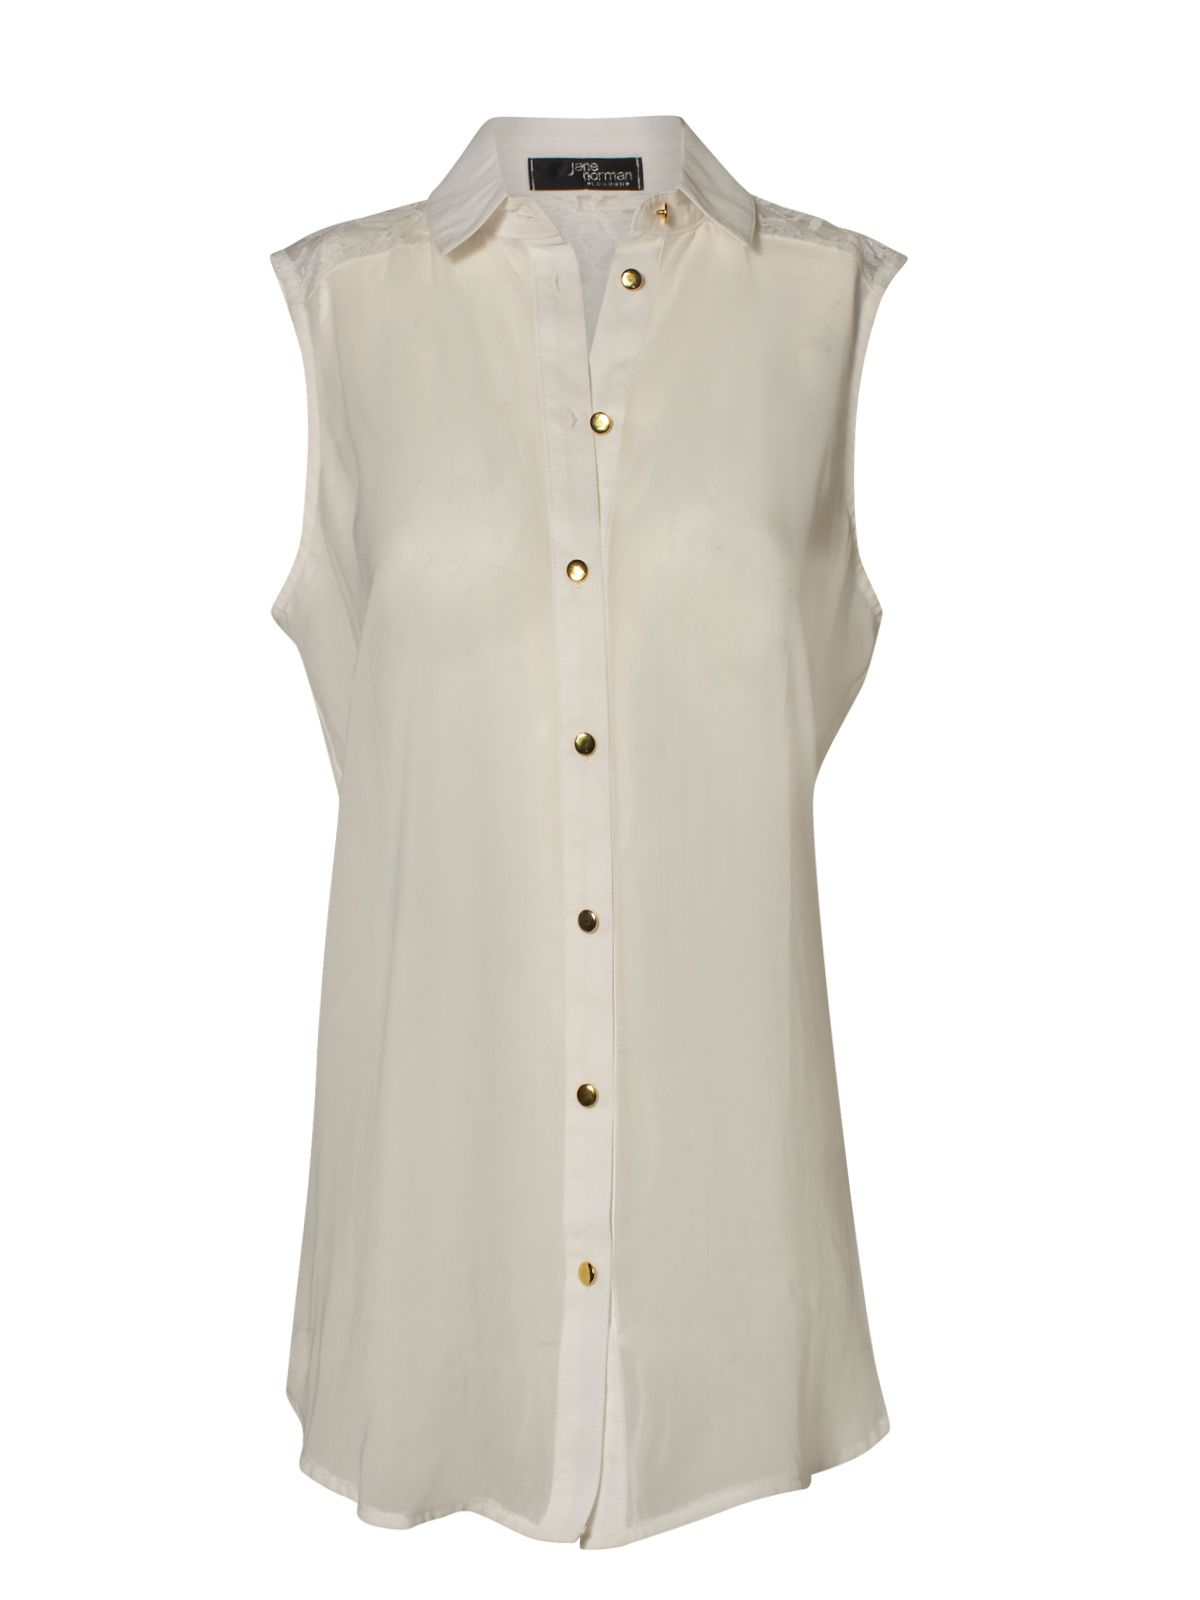 efaa221fca4988 Jane norman Sleeveless Lace Blouse in White